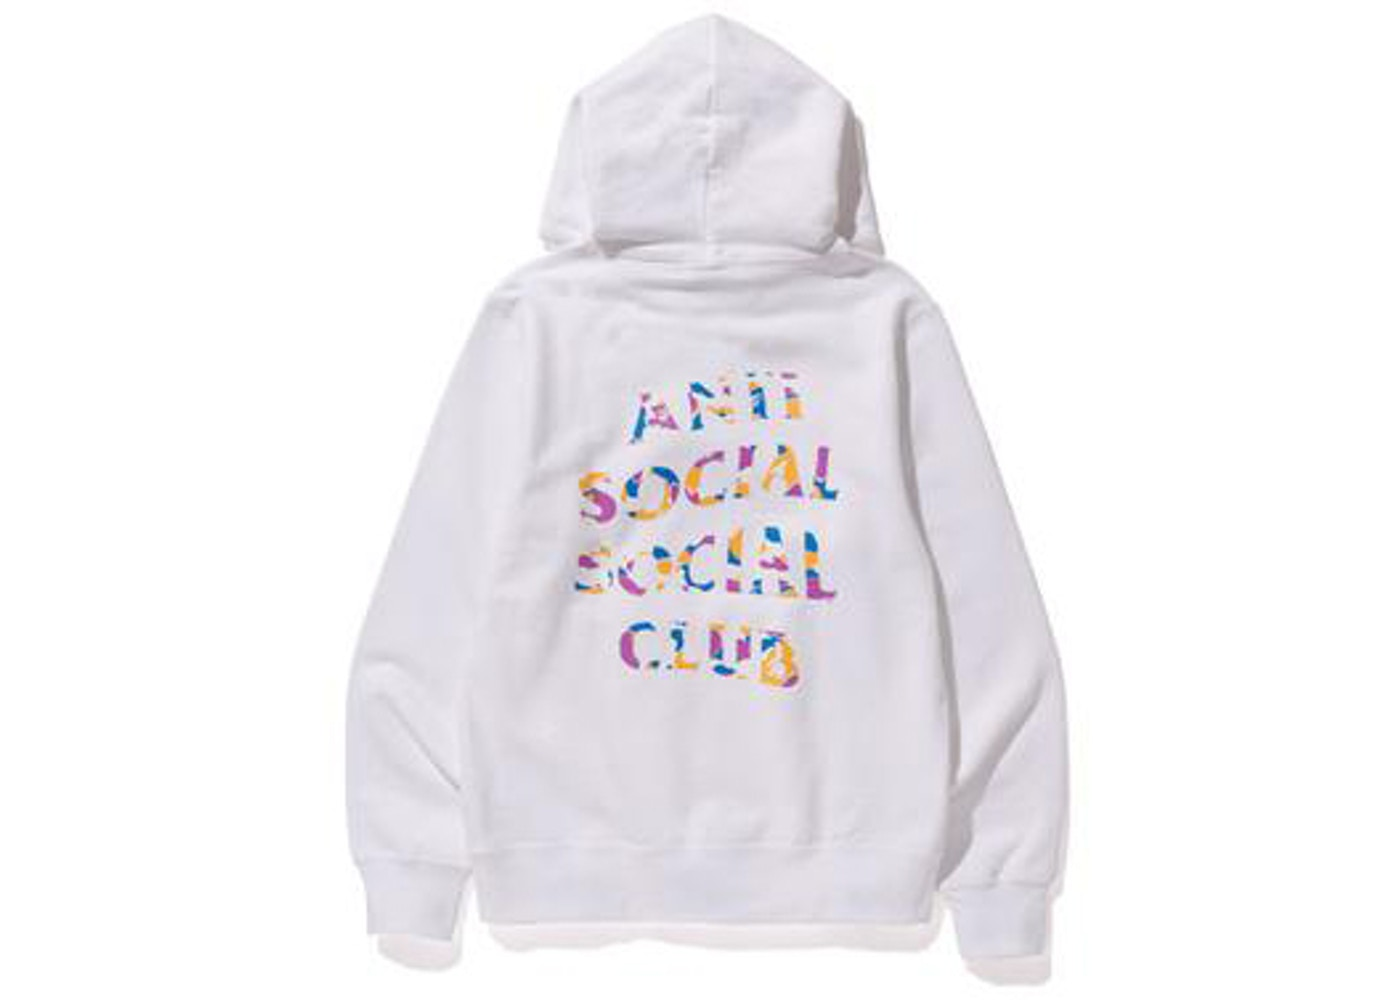 4896b9db2065 BAPE x Anti Social Social Club LA Exclusive City Camo Pullover Hoodie  White Multi